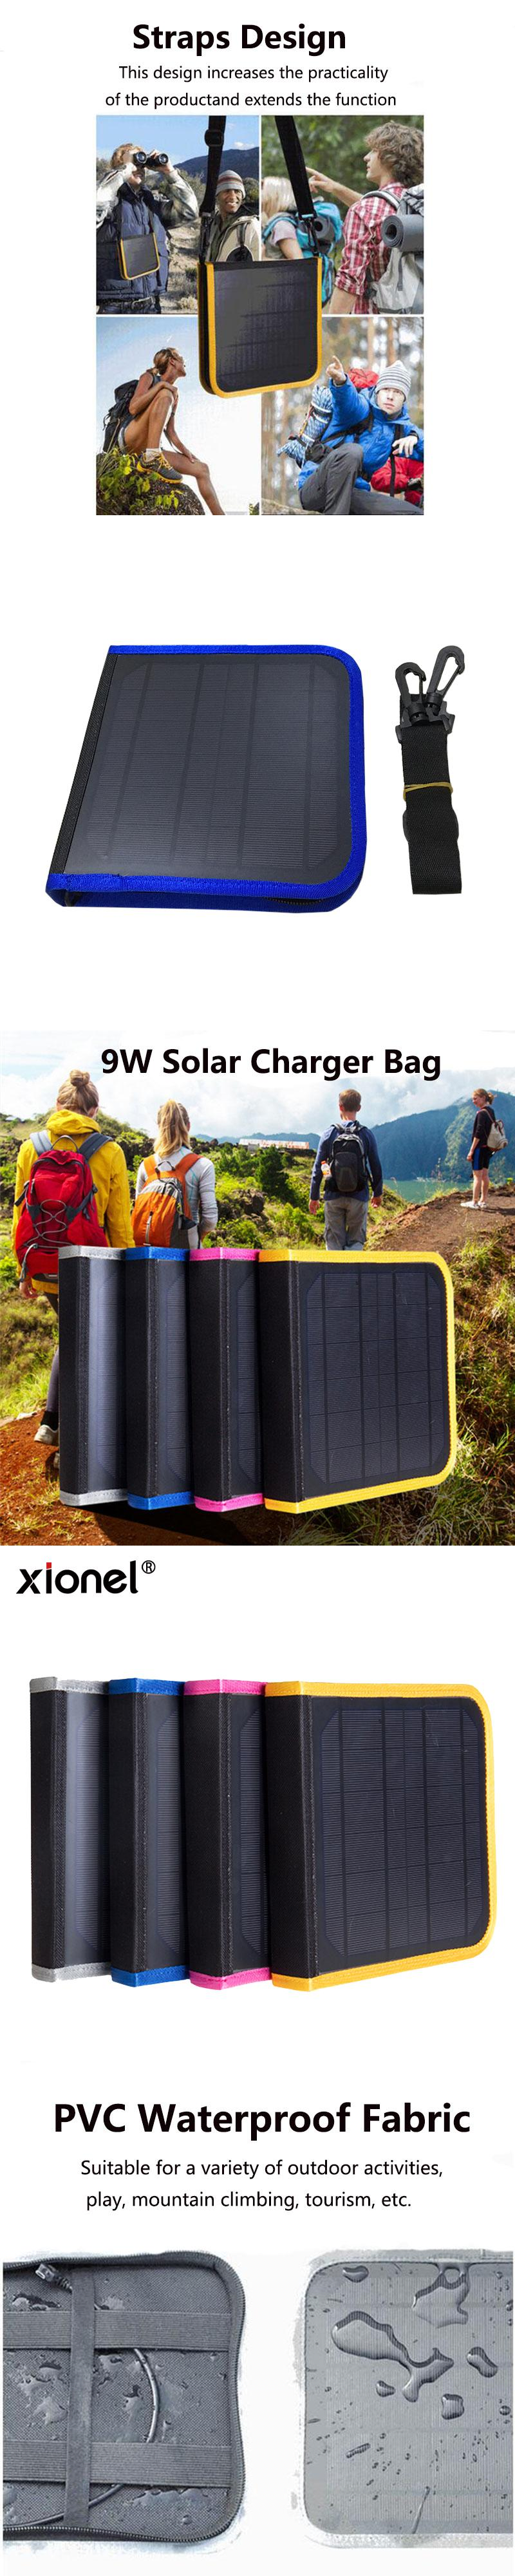 xionel outdoors portable solar charger bag 5v 9w solar panel charger